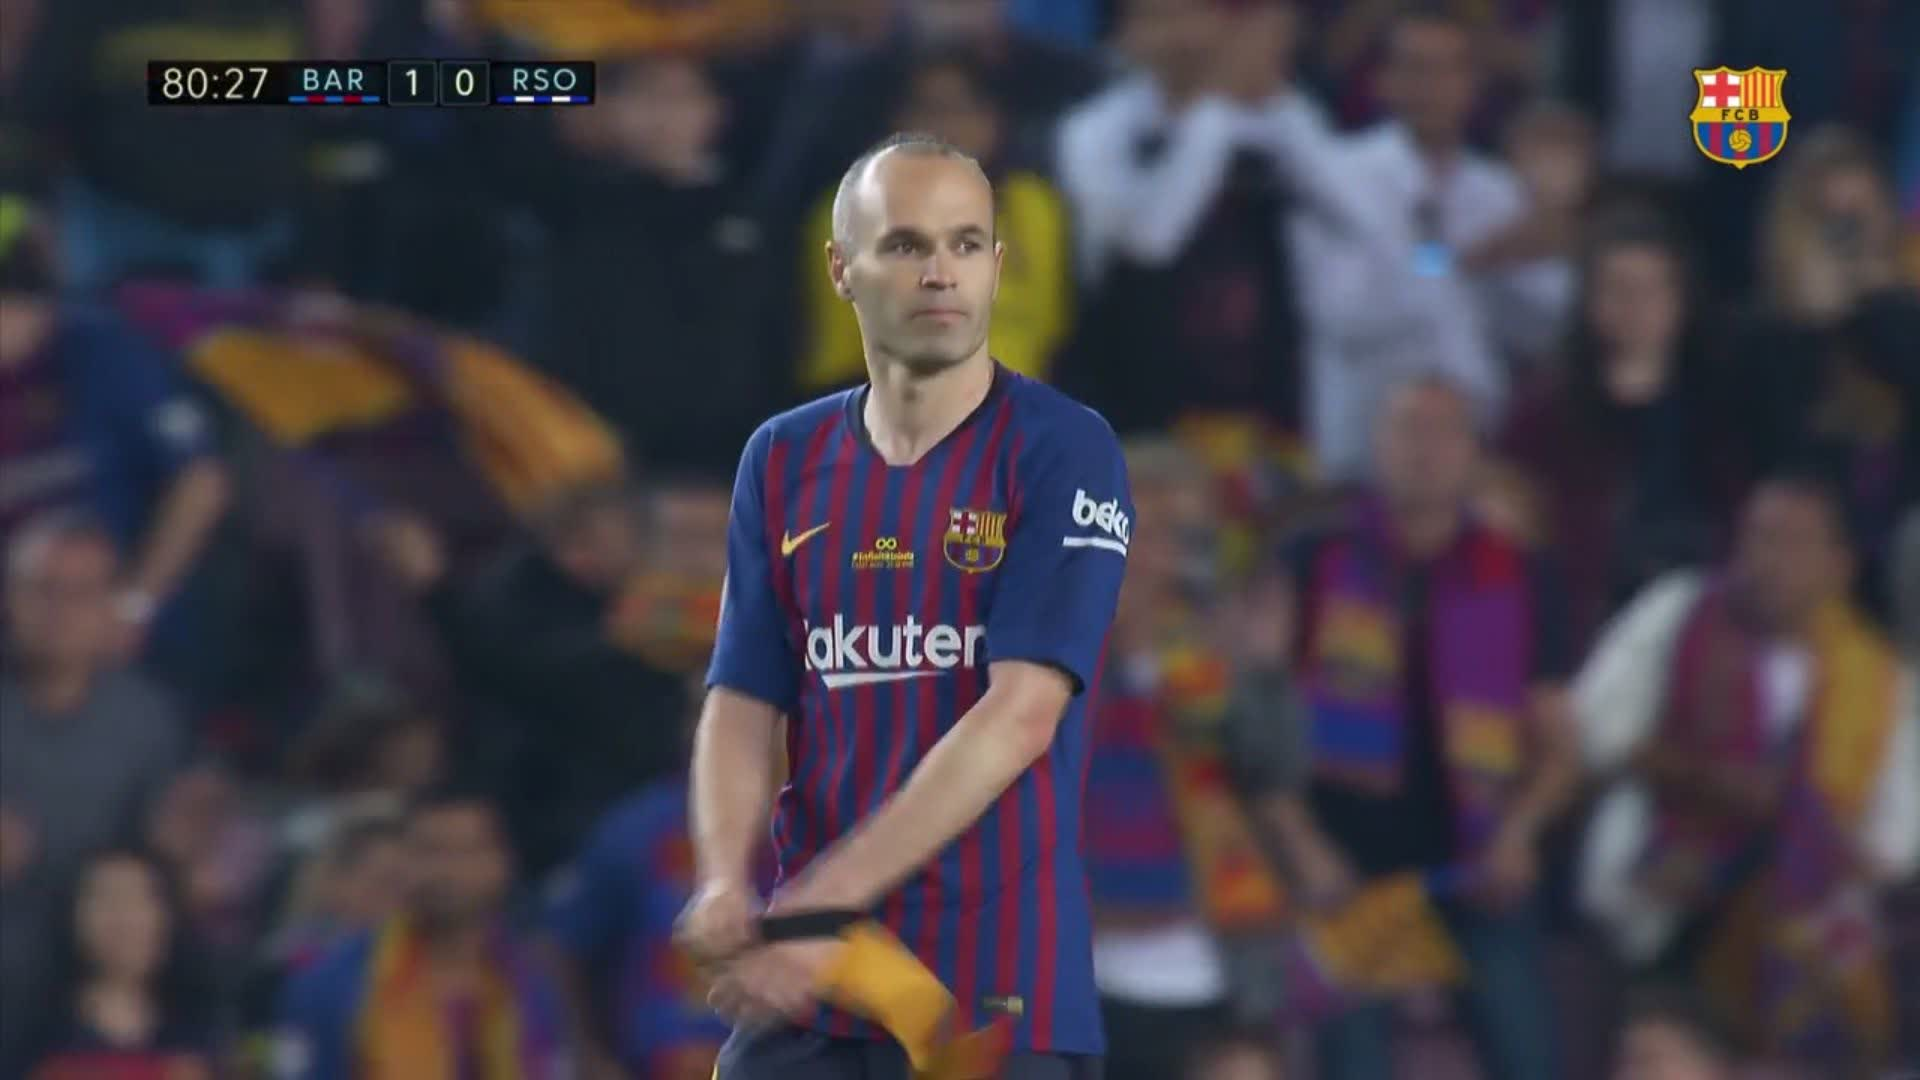 A legend departs and his legacy begins #infinit8iniesta https://t.co/AEpefaJQVv